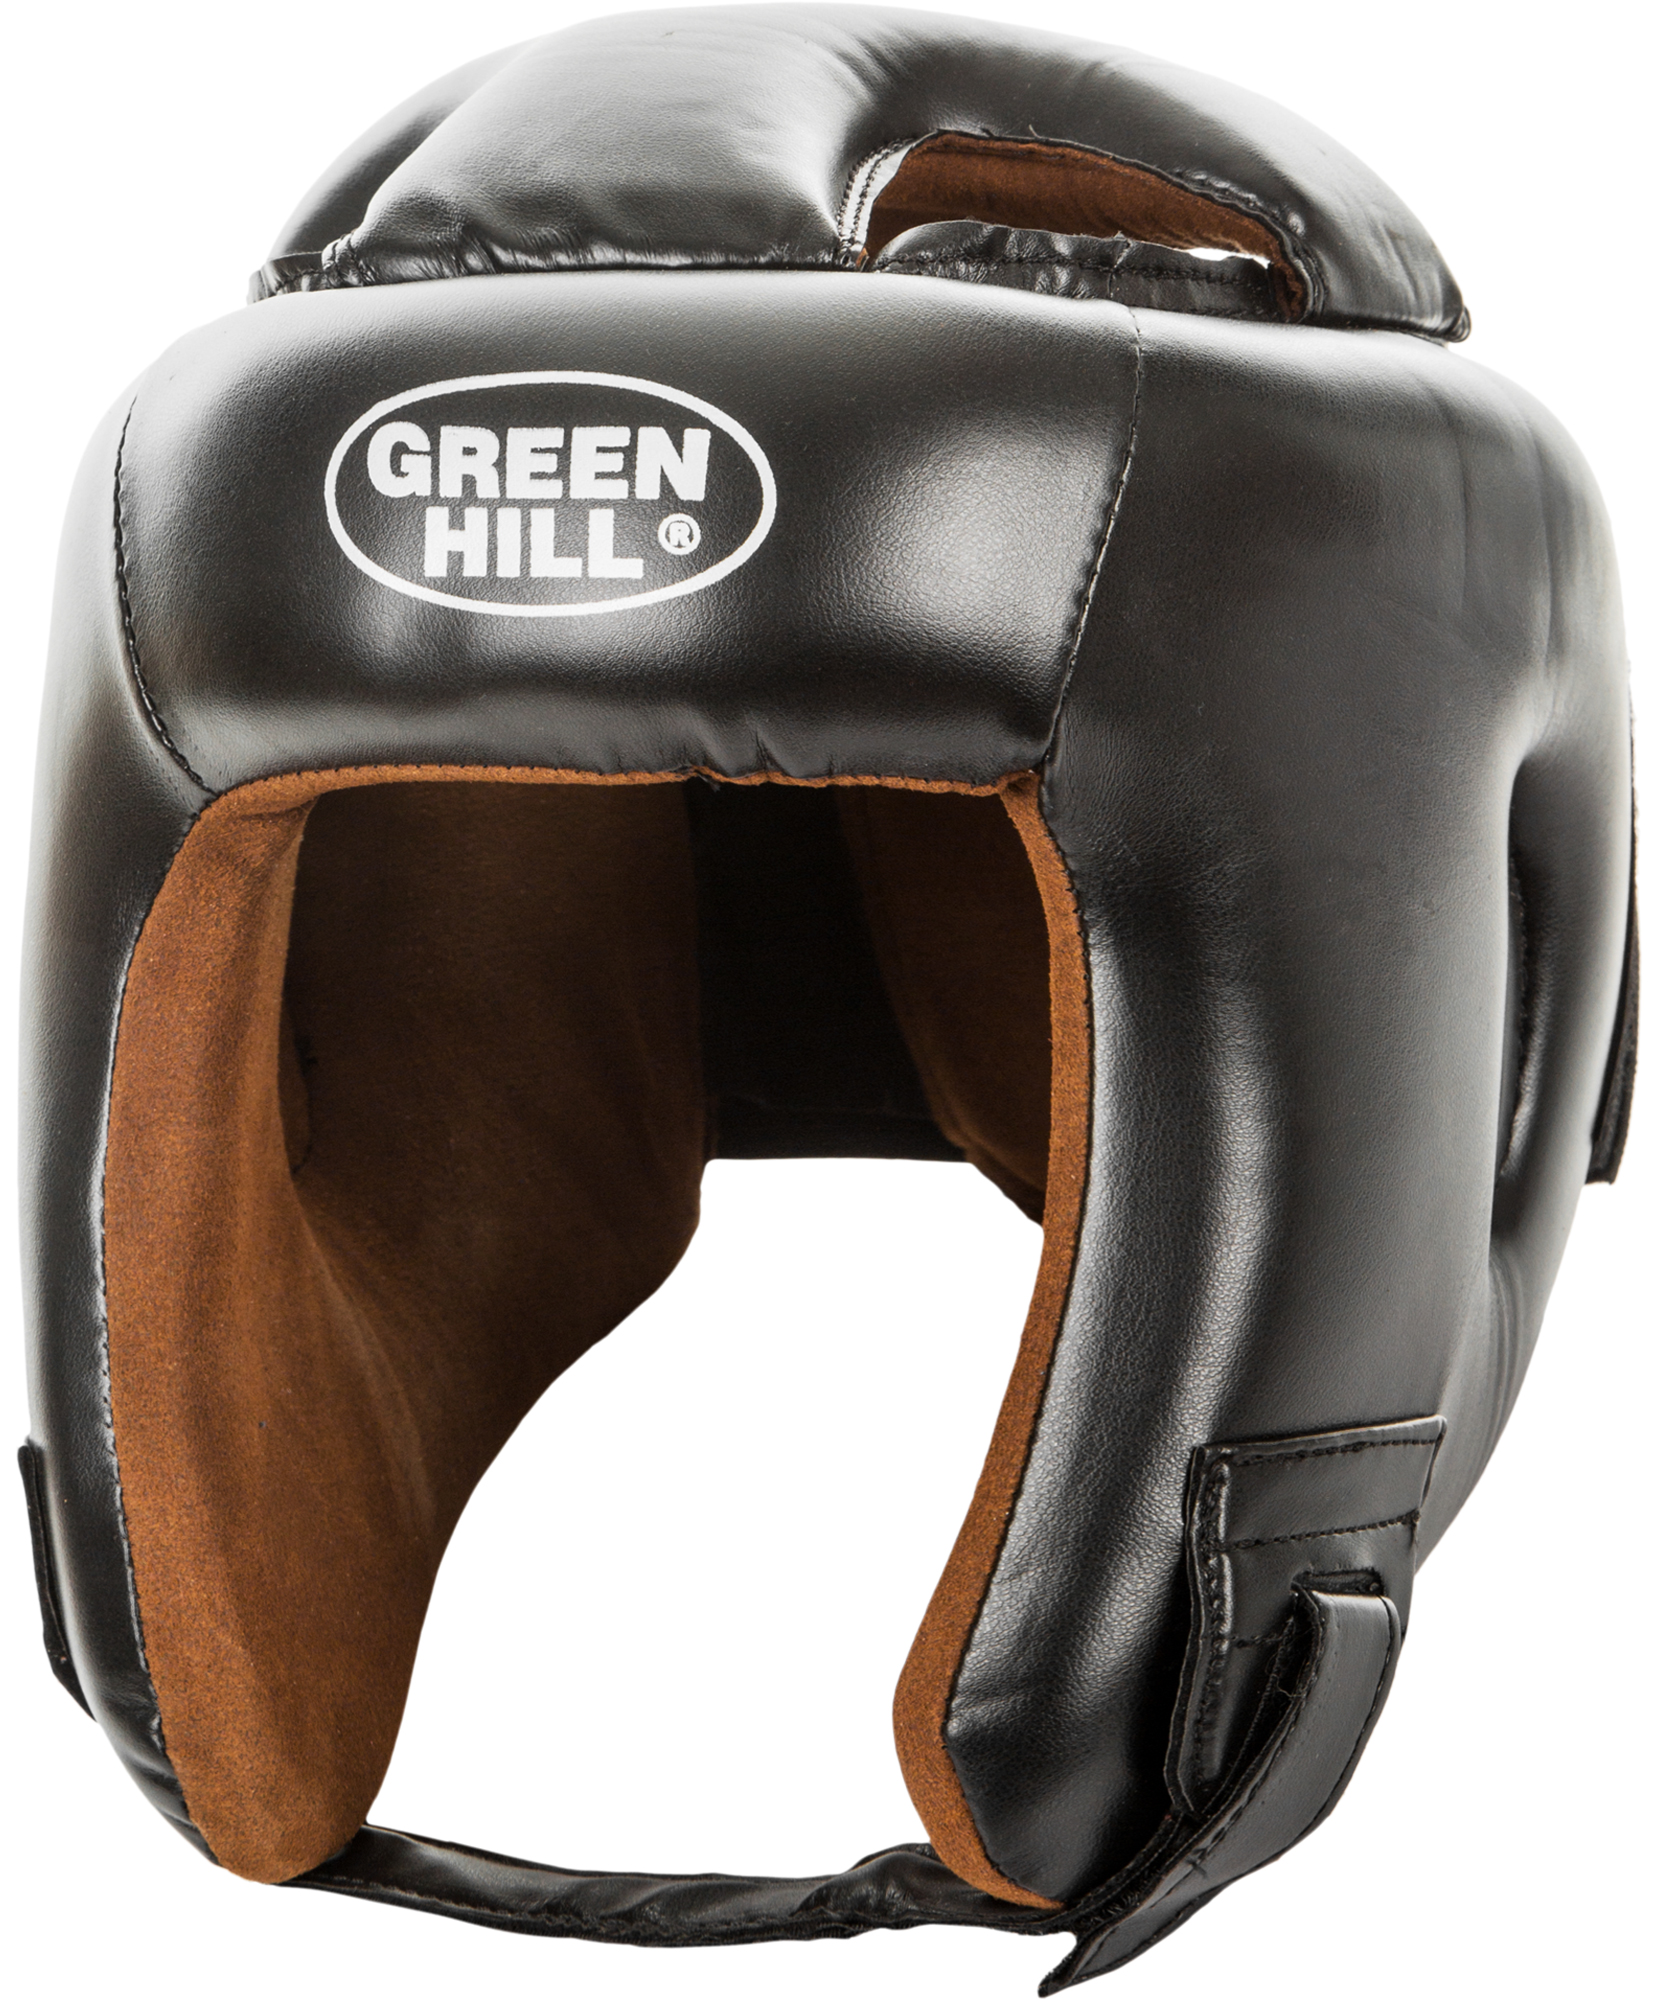 Green Hill Шлем Green Hill Headgear станок